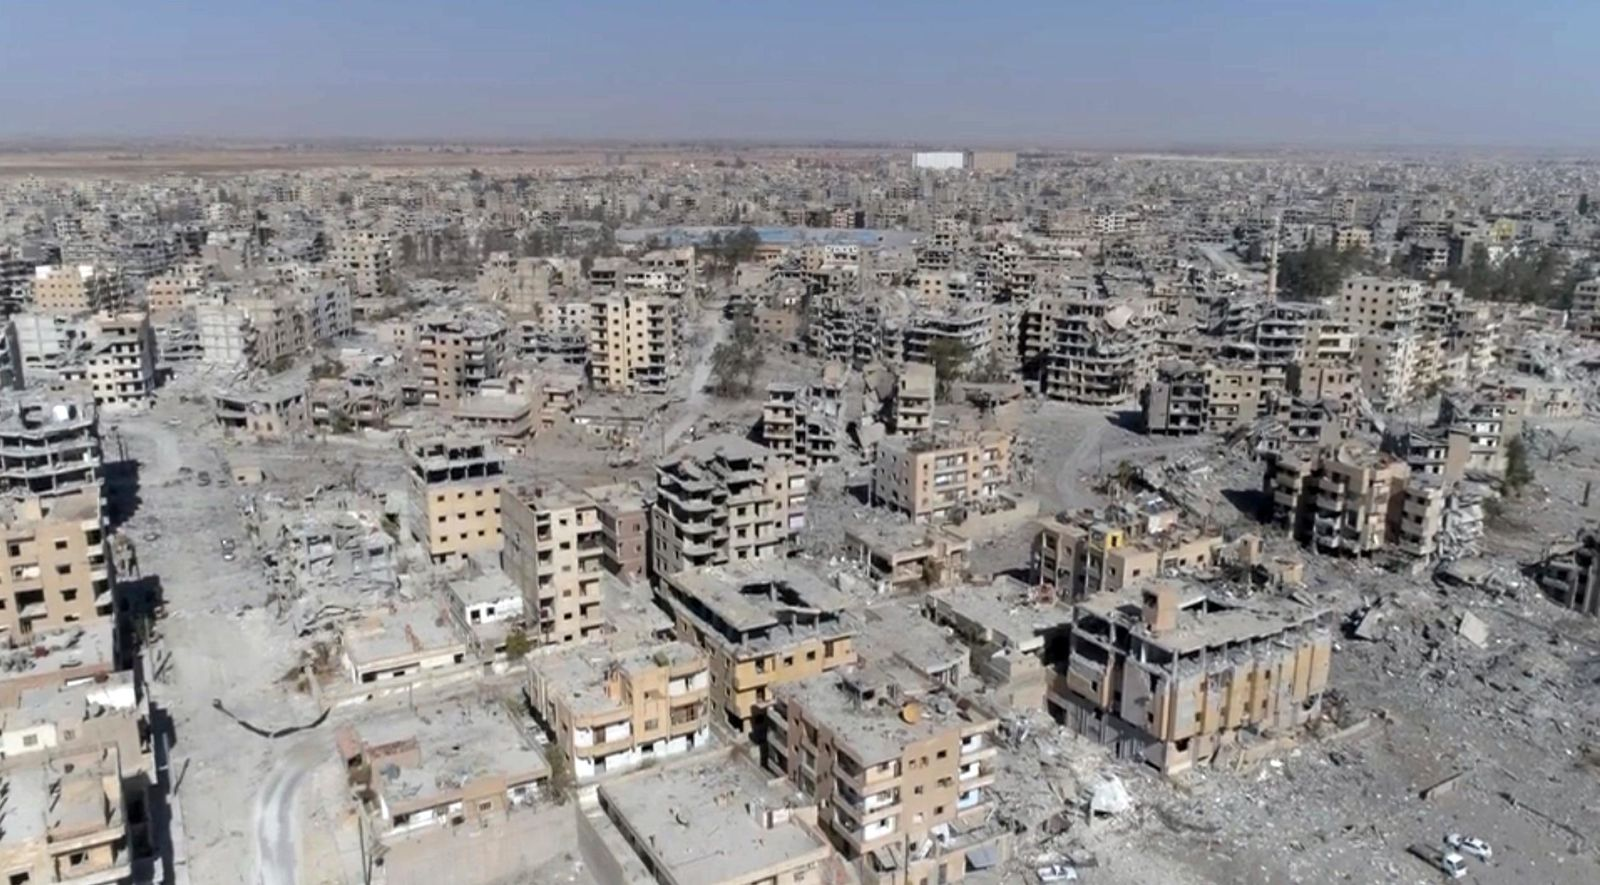 This Thursday, Oct. 19, 2017 frame grab made from drone video shows damaged buildings in Raqqa, Syria, two days after Syrian Democratic Forces said that military operations to oust the Islamic State group have ended and that their fighters have taken full control of the city. (AP Photo/ Gabriel Chaim)